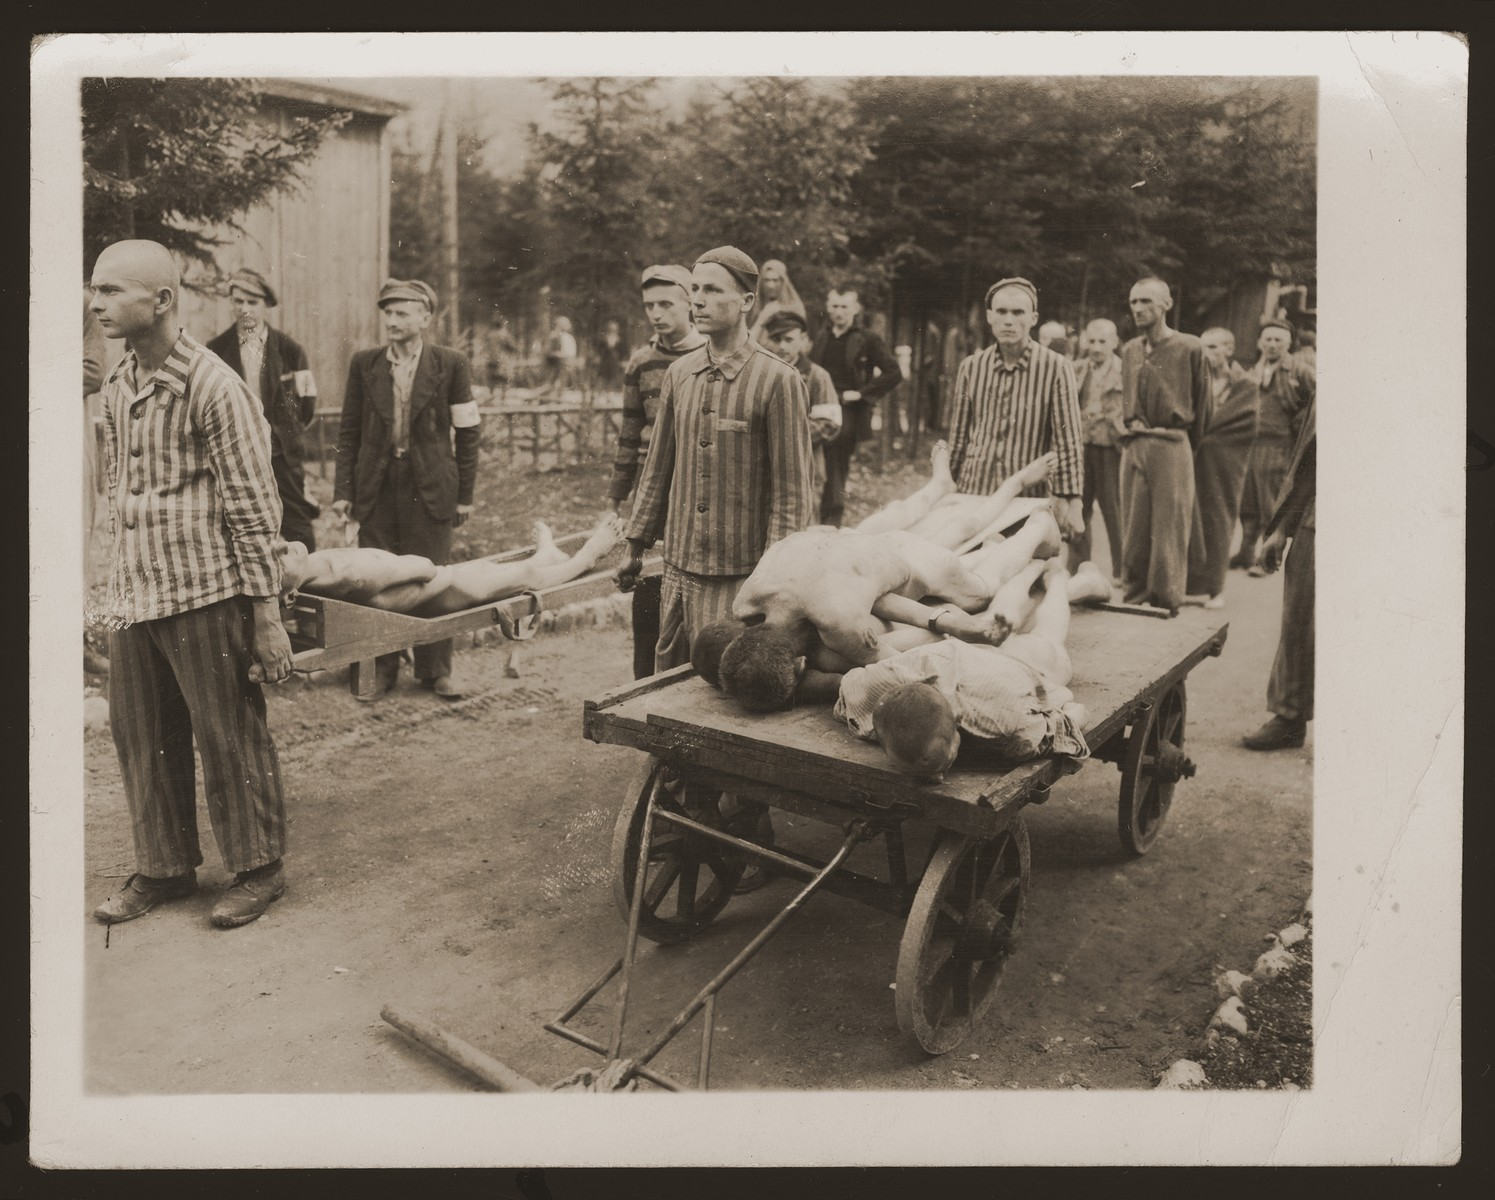 Using stretchers and carts, survivors of the Ebensee concentration camp remove the bodies of former inmates to the crematorium for burning.   Among those pictured is Henek (now Hank) Brodt (center, wearing a black cap and white arm band, behind a survivor carrying a stretcher).